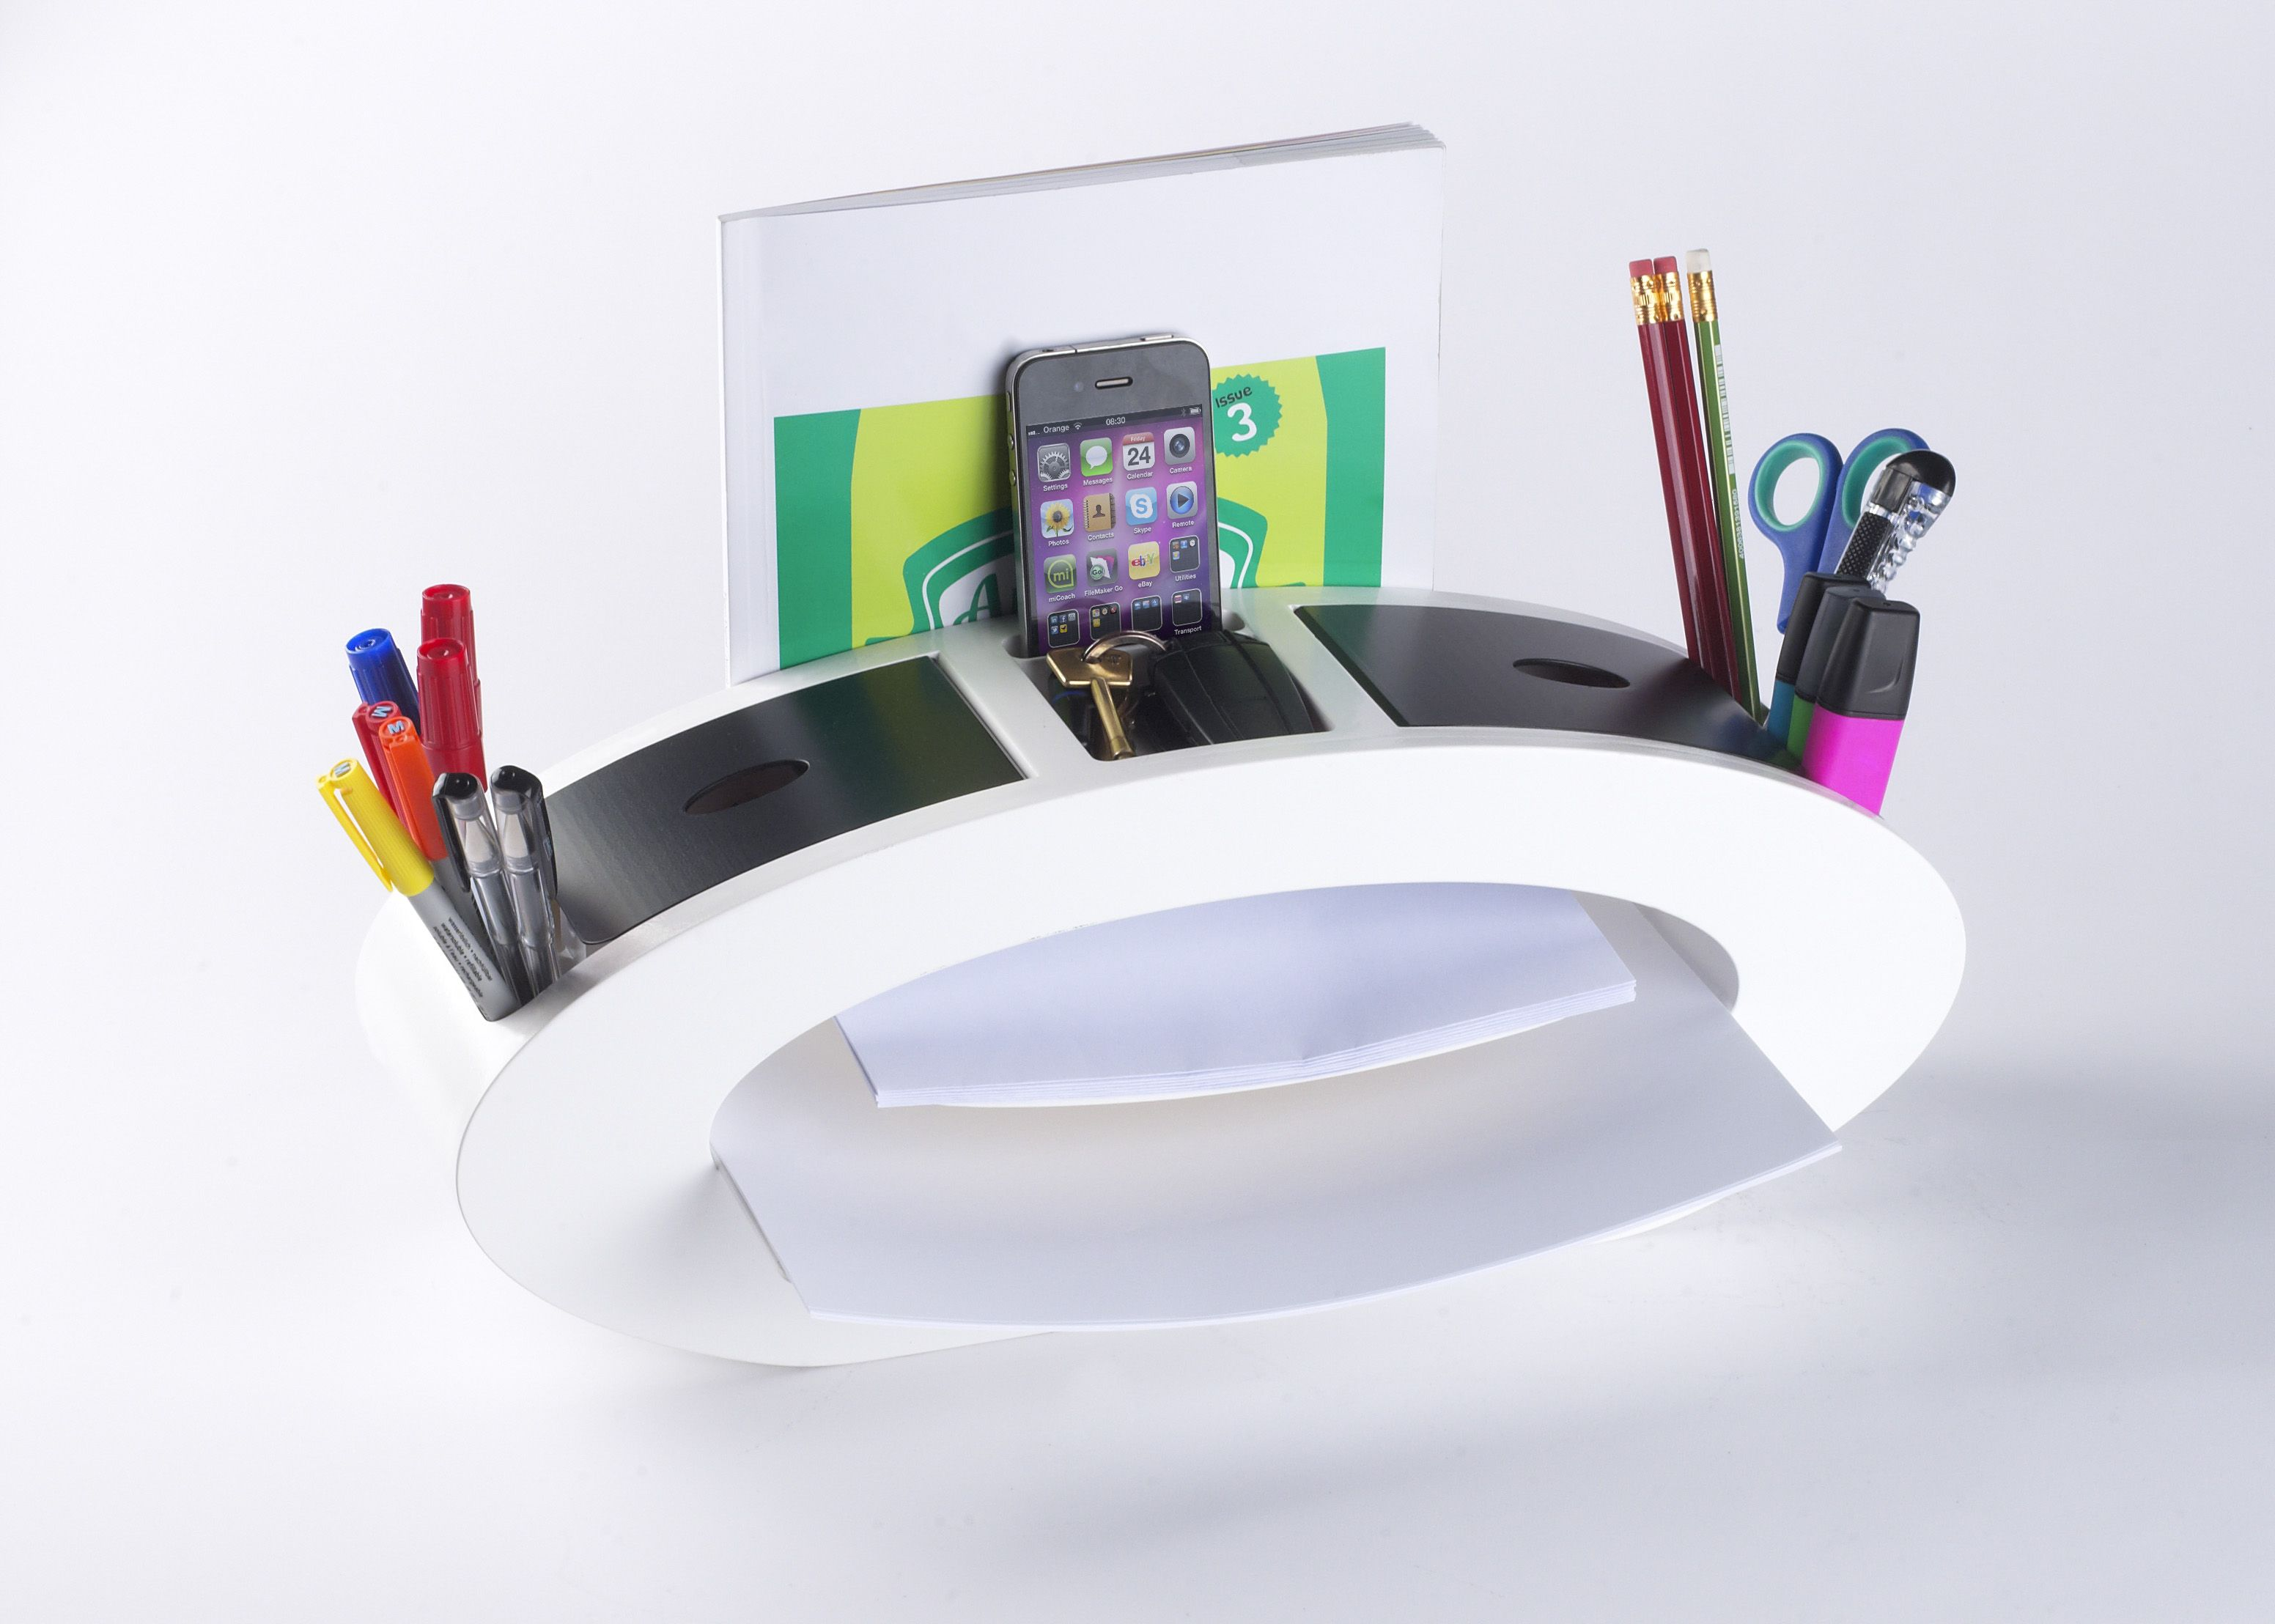 Something to make your desk look even tidier - Courtesy of Avery.   The new Avery All-in-One range combines stunning design with cutting-edge features and functionality, offering you a totally unique way to keep your desk tidy, organised and super-stylish.